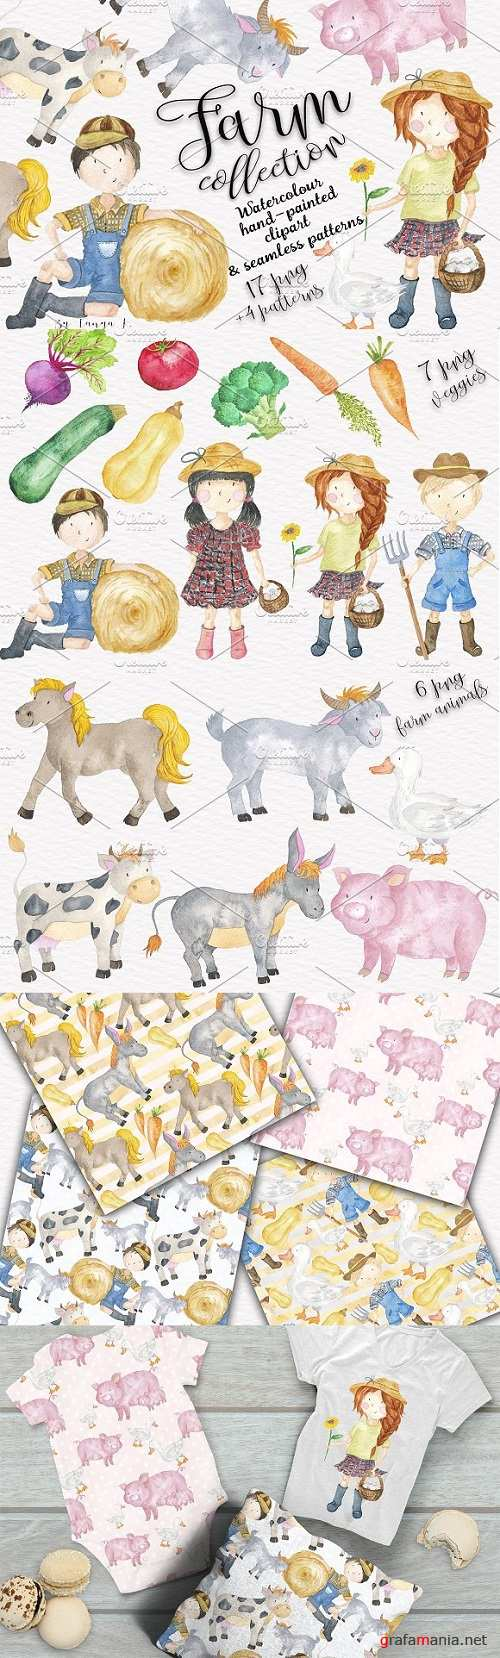 Farm Animals Kids Collection 1387496